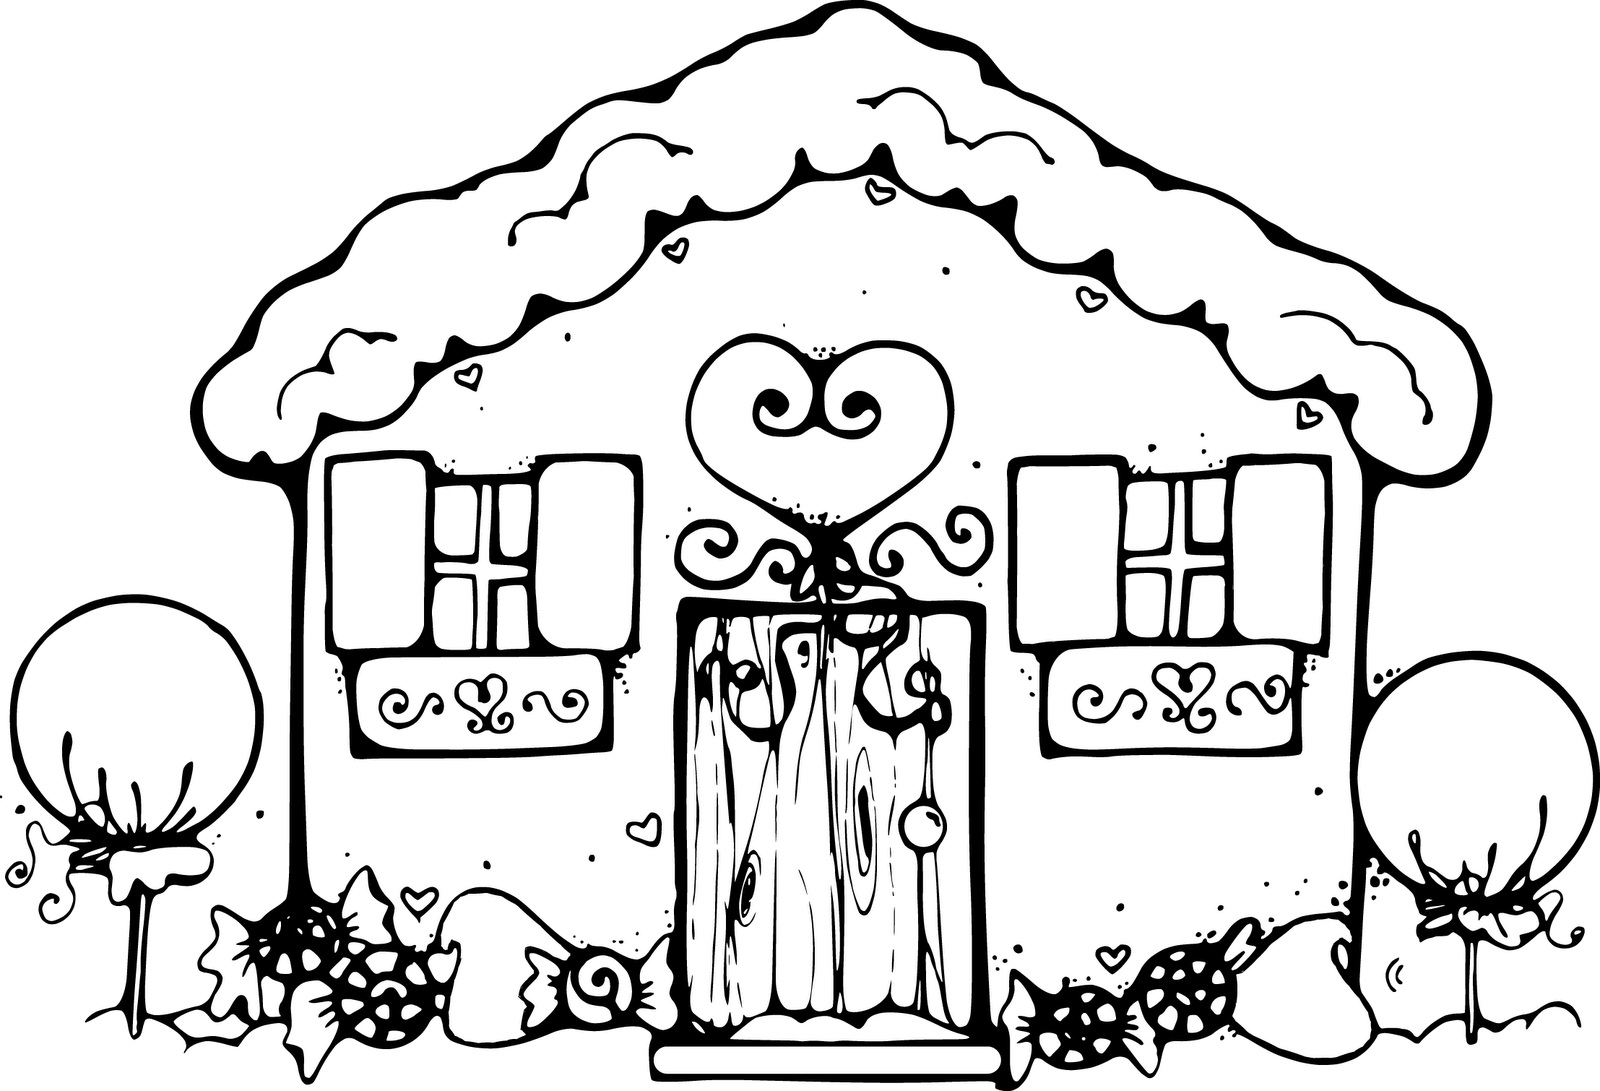 gingerbread house coloring pages for kids - Coloring Pictures For Kids